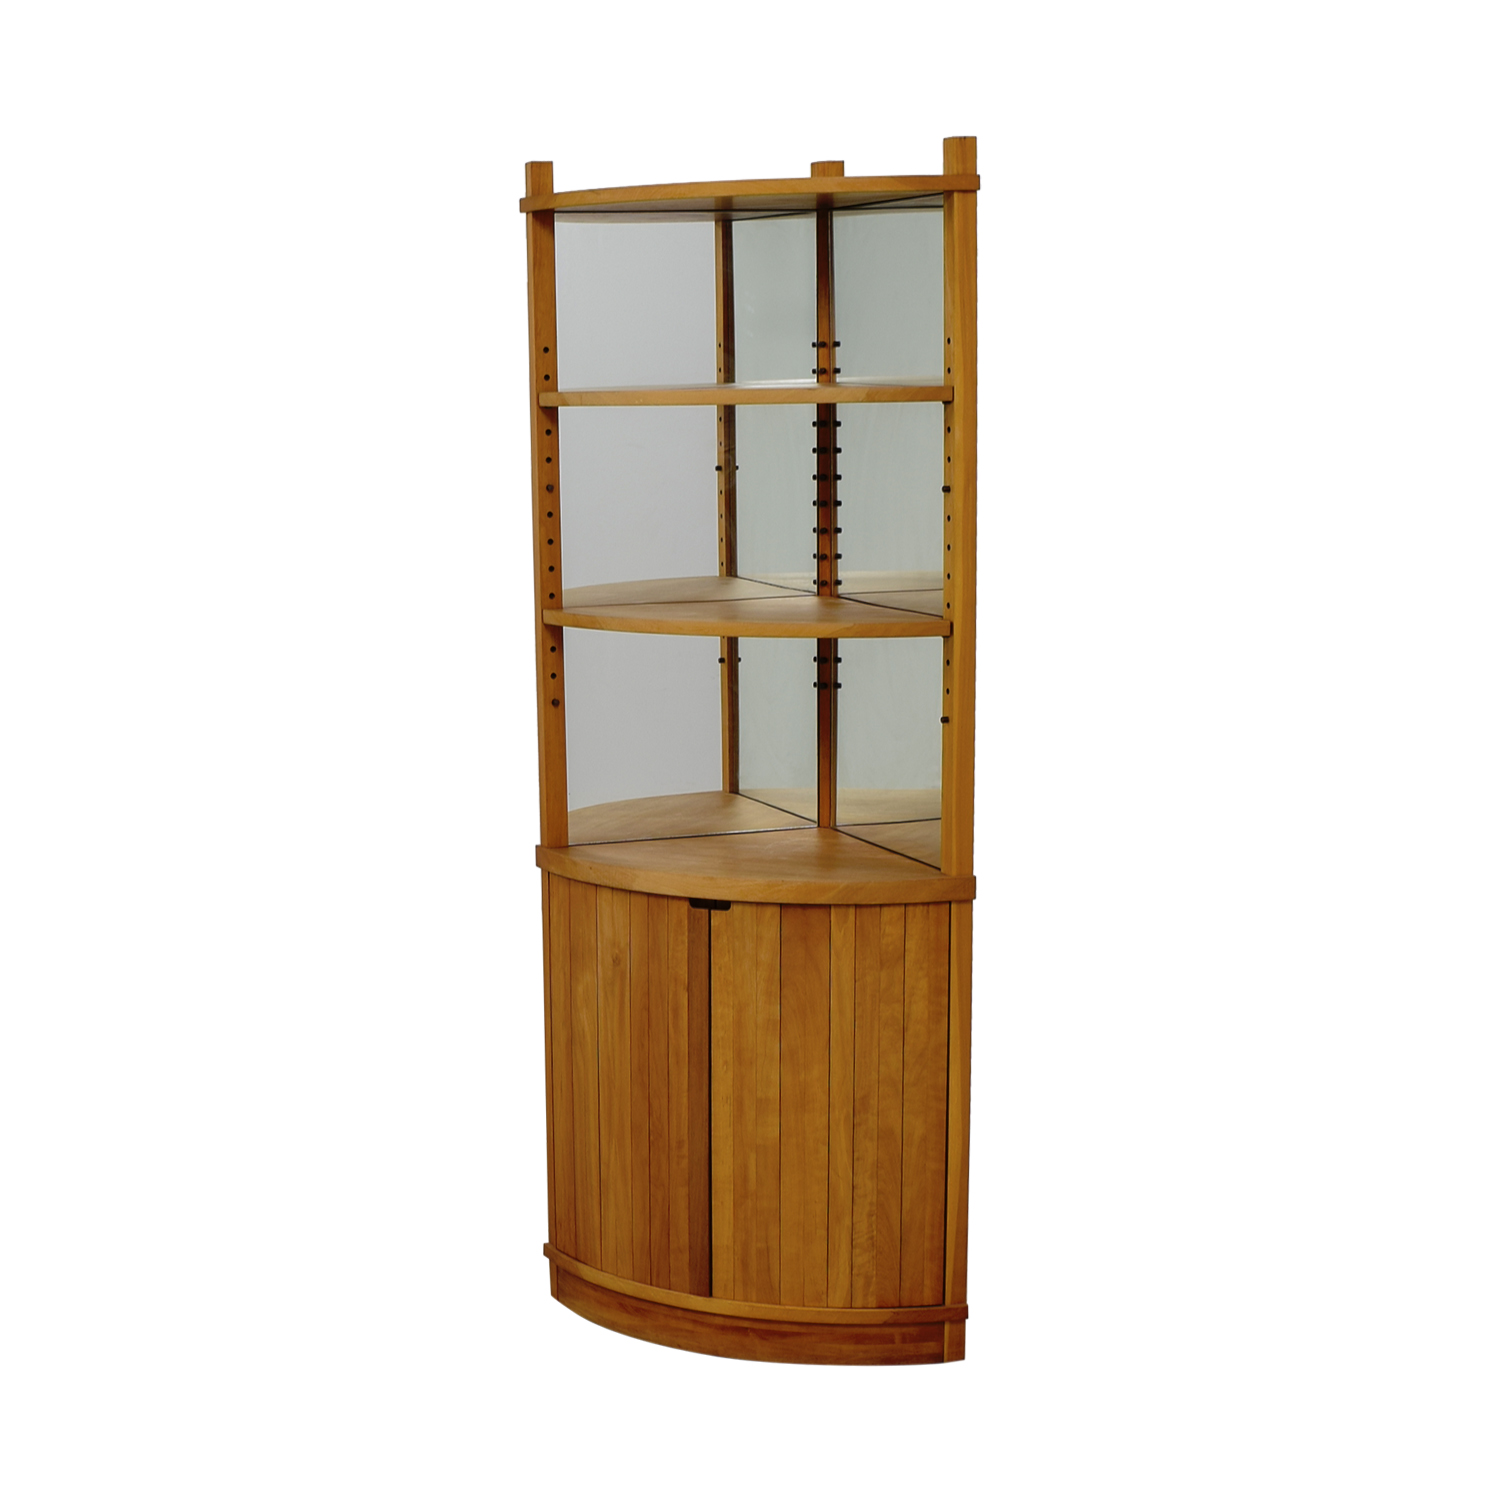 90 Off Cherry Wood Mirrored Corner Cabinet Storage